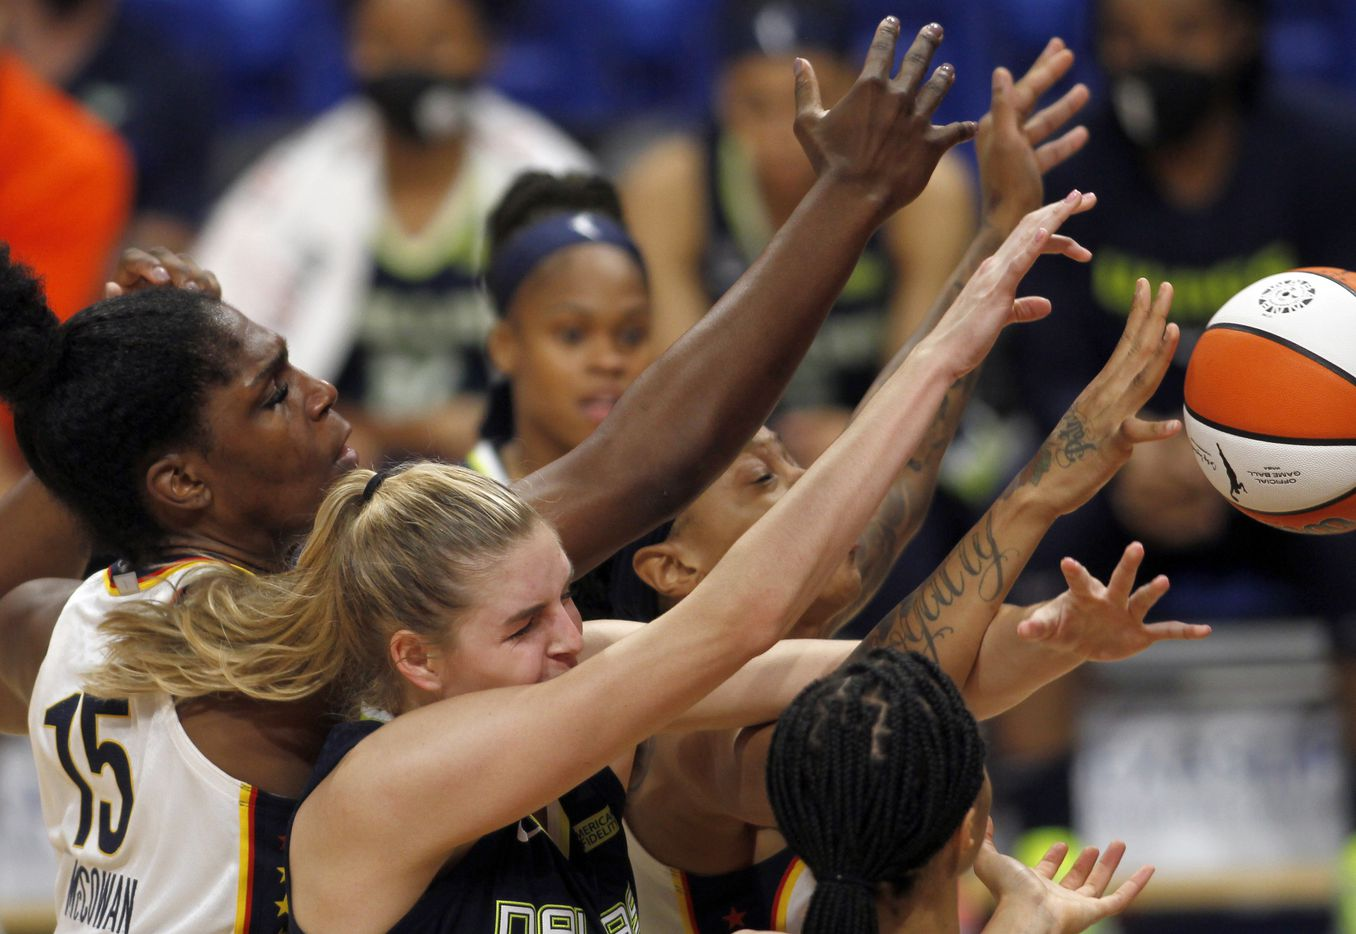 Dallas Wings center Bella Alarie (32), lower center, winces as she finds herself competing with several Indiana Fever players, including Teaira McCowen (15), far left, for a rebound during first half action. The Wings lost to the Fever 83-81.The Dallas Wings hosted the Indiana Fever for their WNBA game held at College Park Center on the campus of UT-Arlington on August 20, 2021. (Steve Hamm/ Special Contributor)